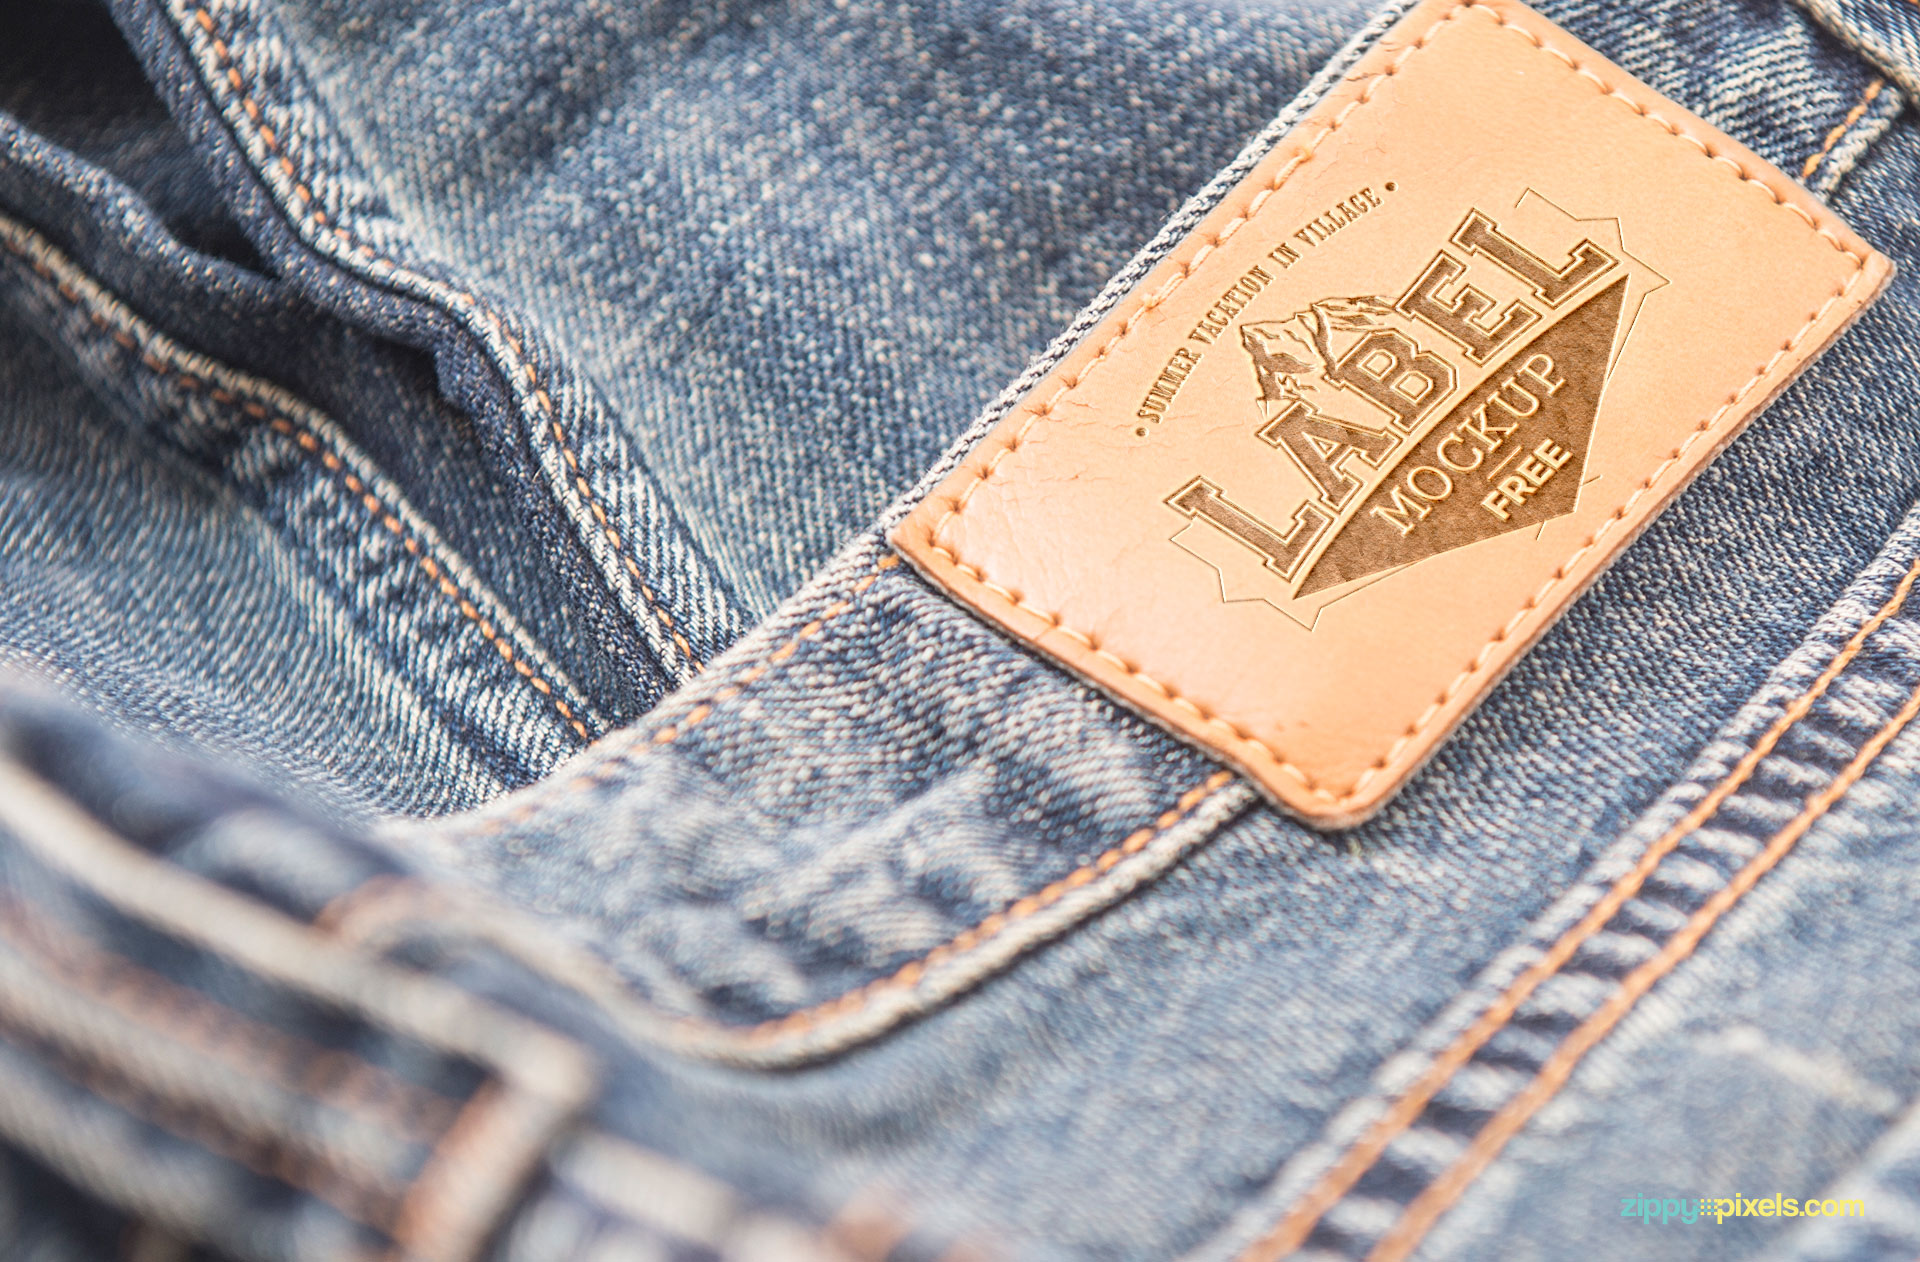 Leather material of the jeans label.